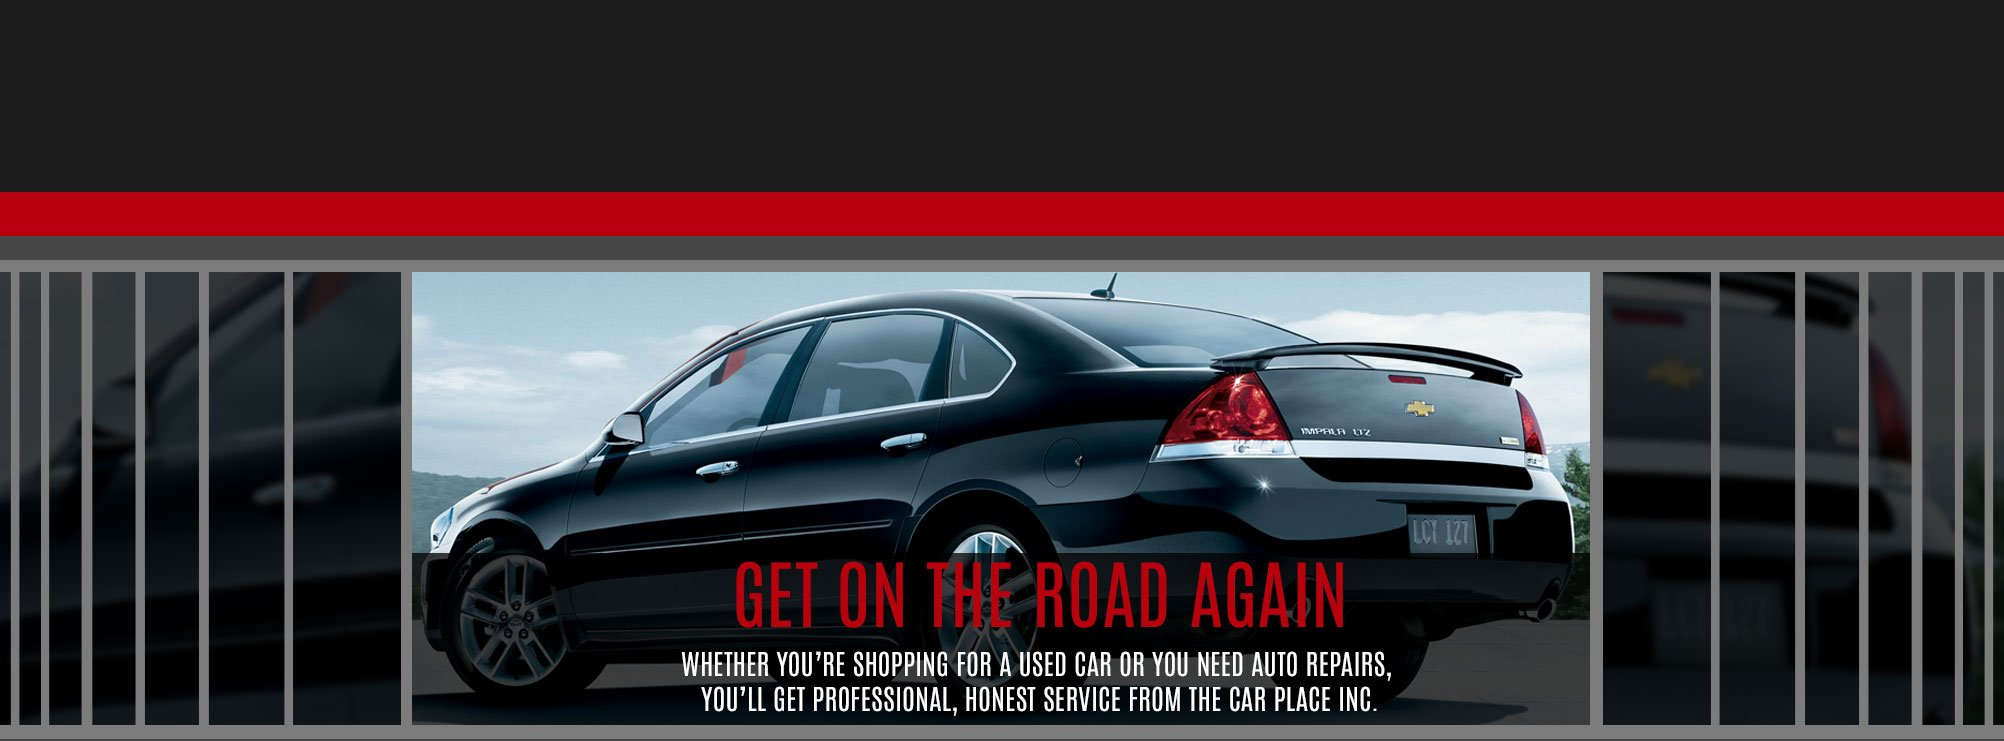 THE CAR PLACE INC  - Used Cars - Somersville CT Dealer